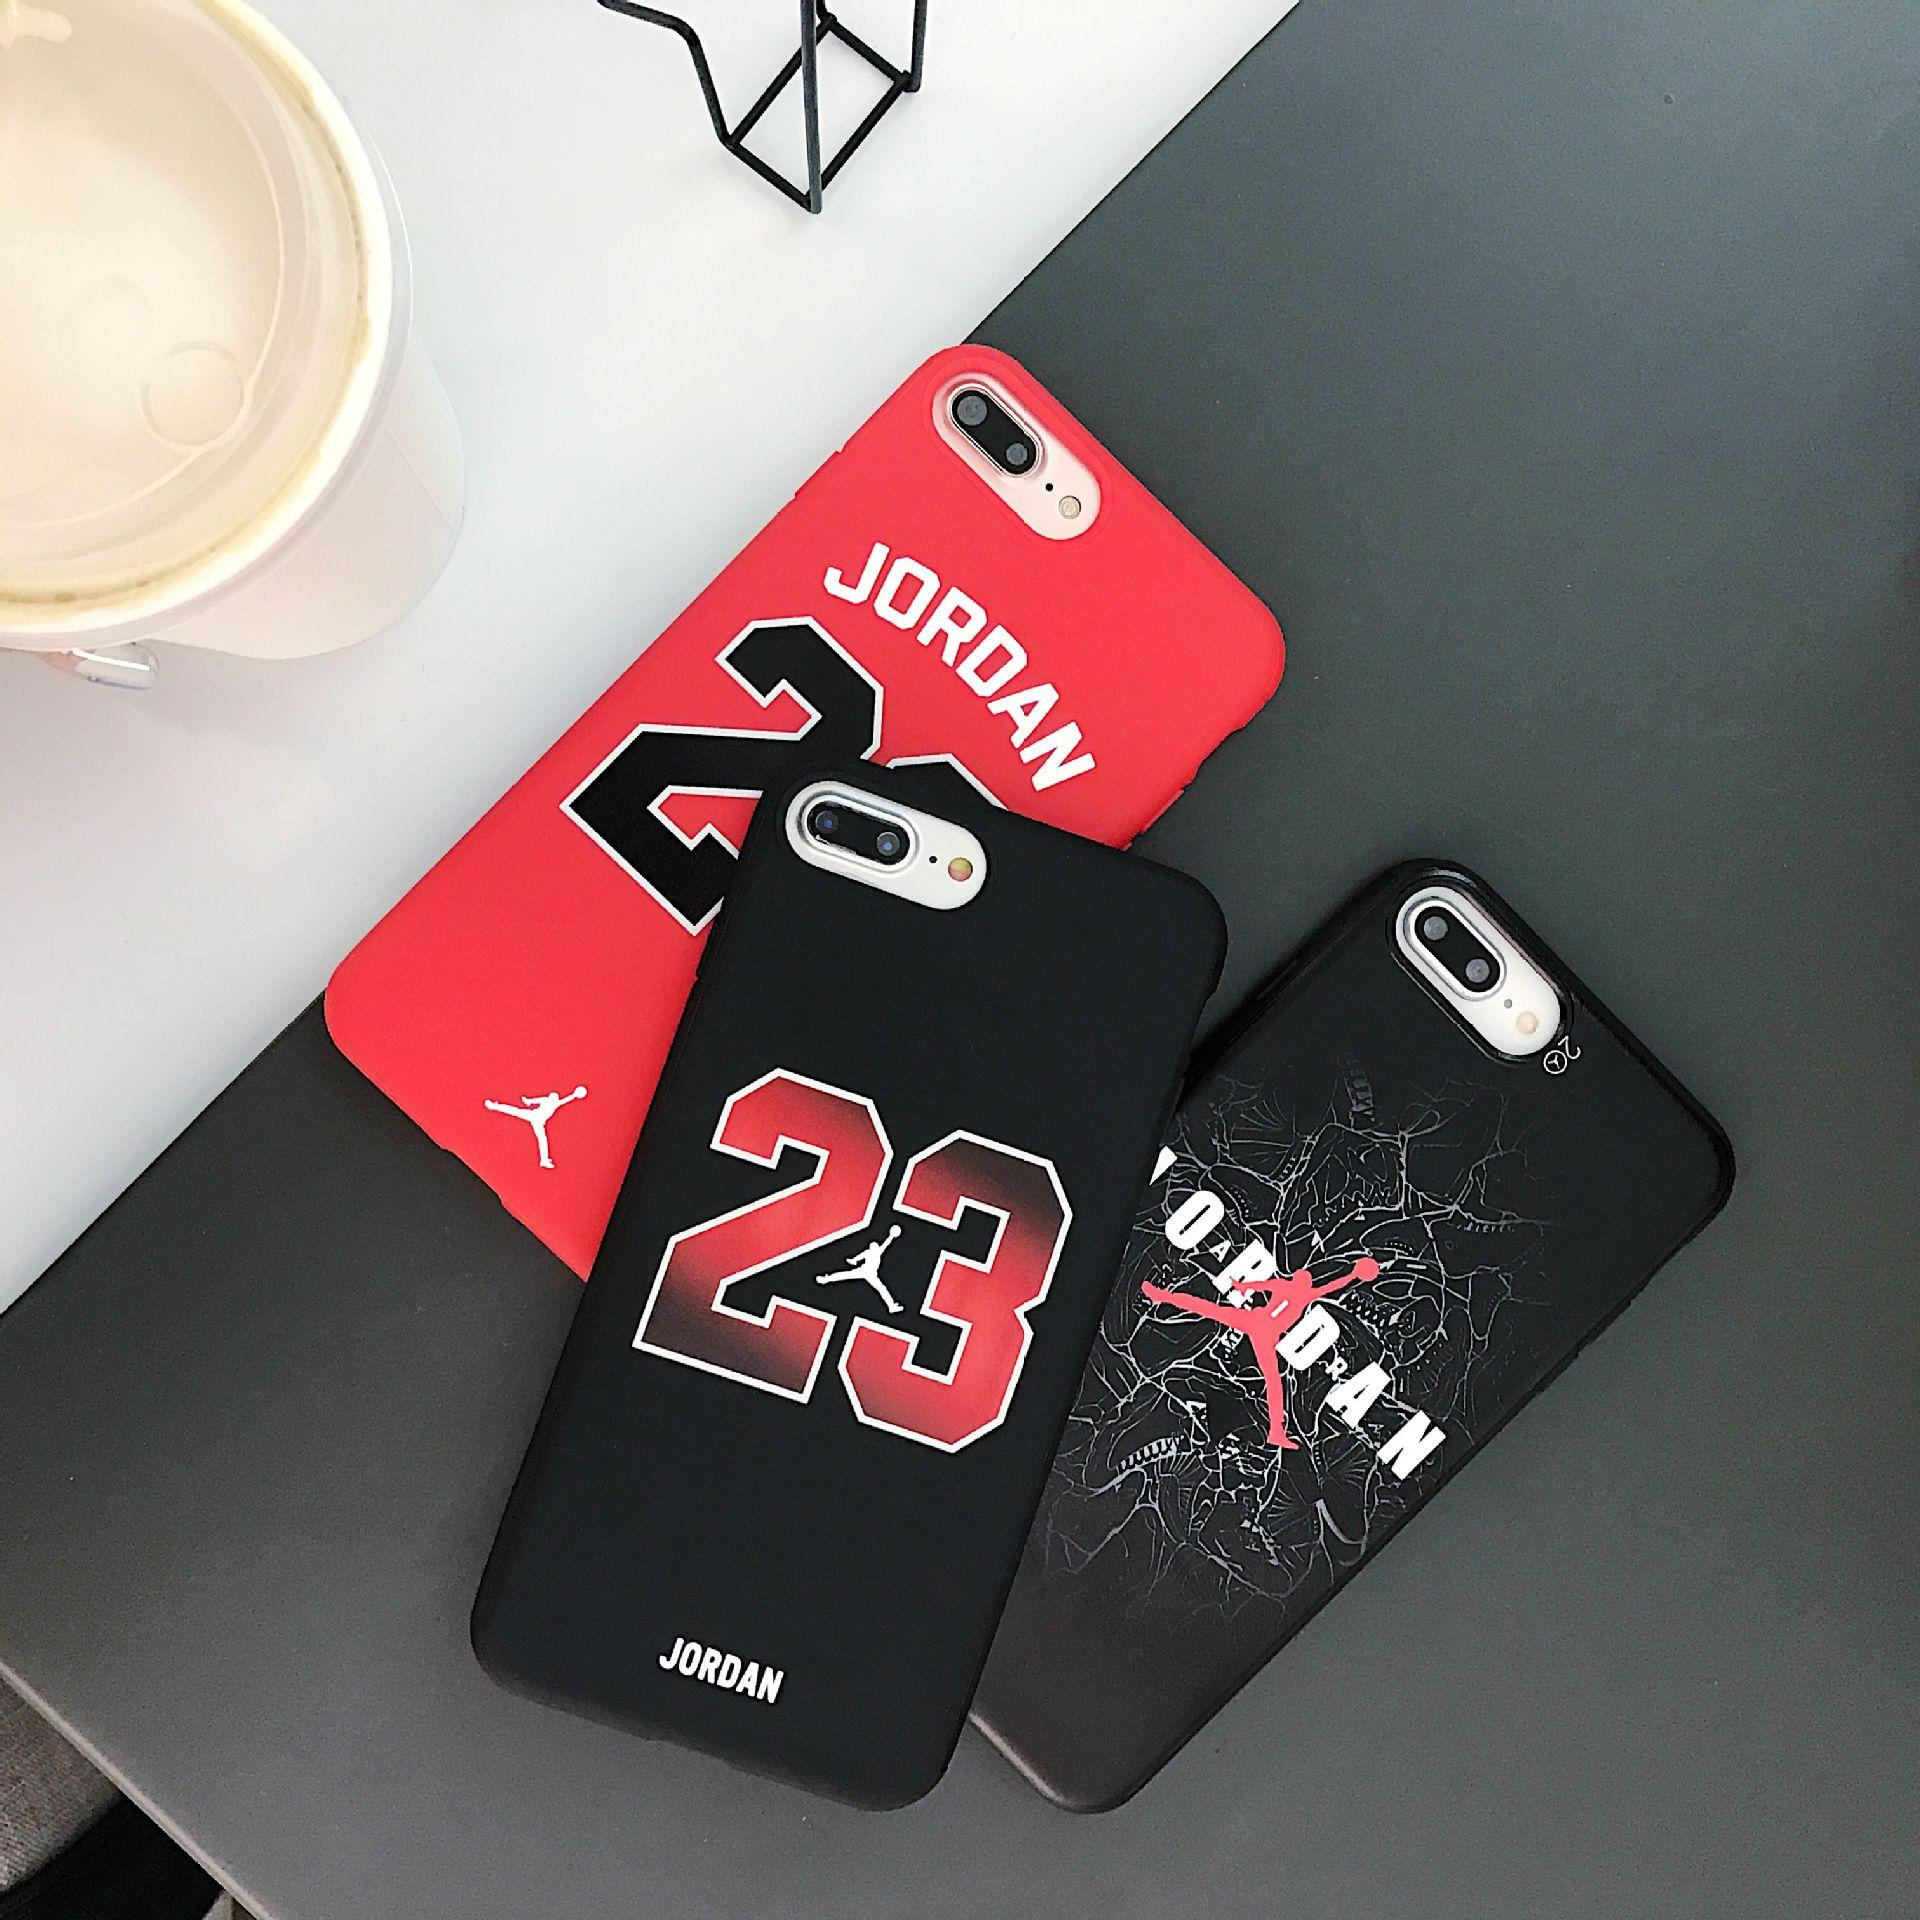 36c71c3f22361 Wholesale Jersey Designer Phone Case For IPhone X 6 6S 6plus 7 8  7plus 8plus High Street Style Hip Hop Brand Case Cover Phone Case With Rope  Rhinestone Cell ...